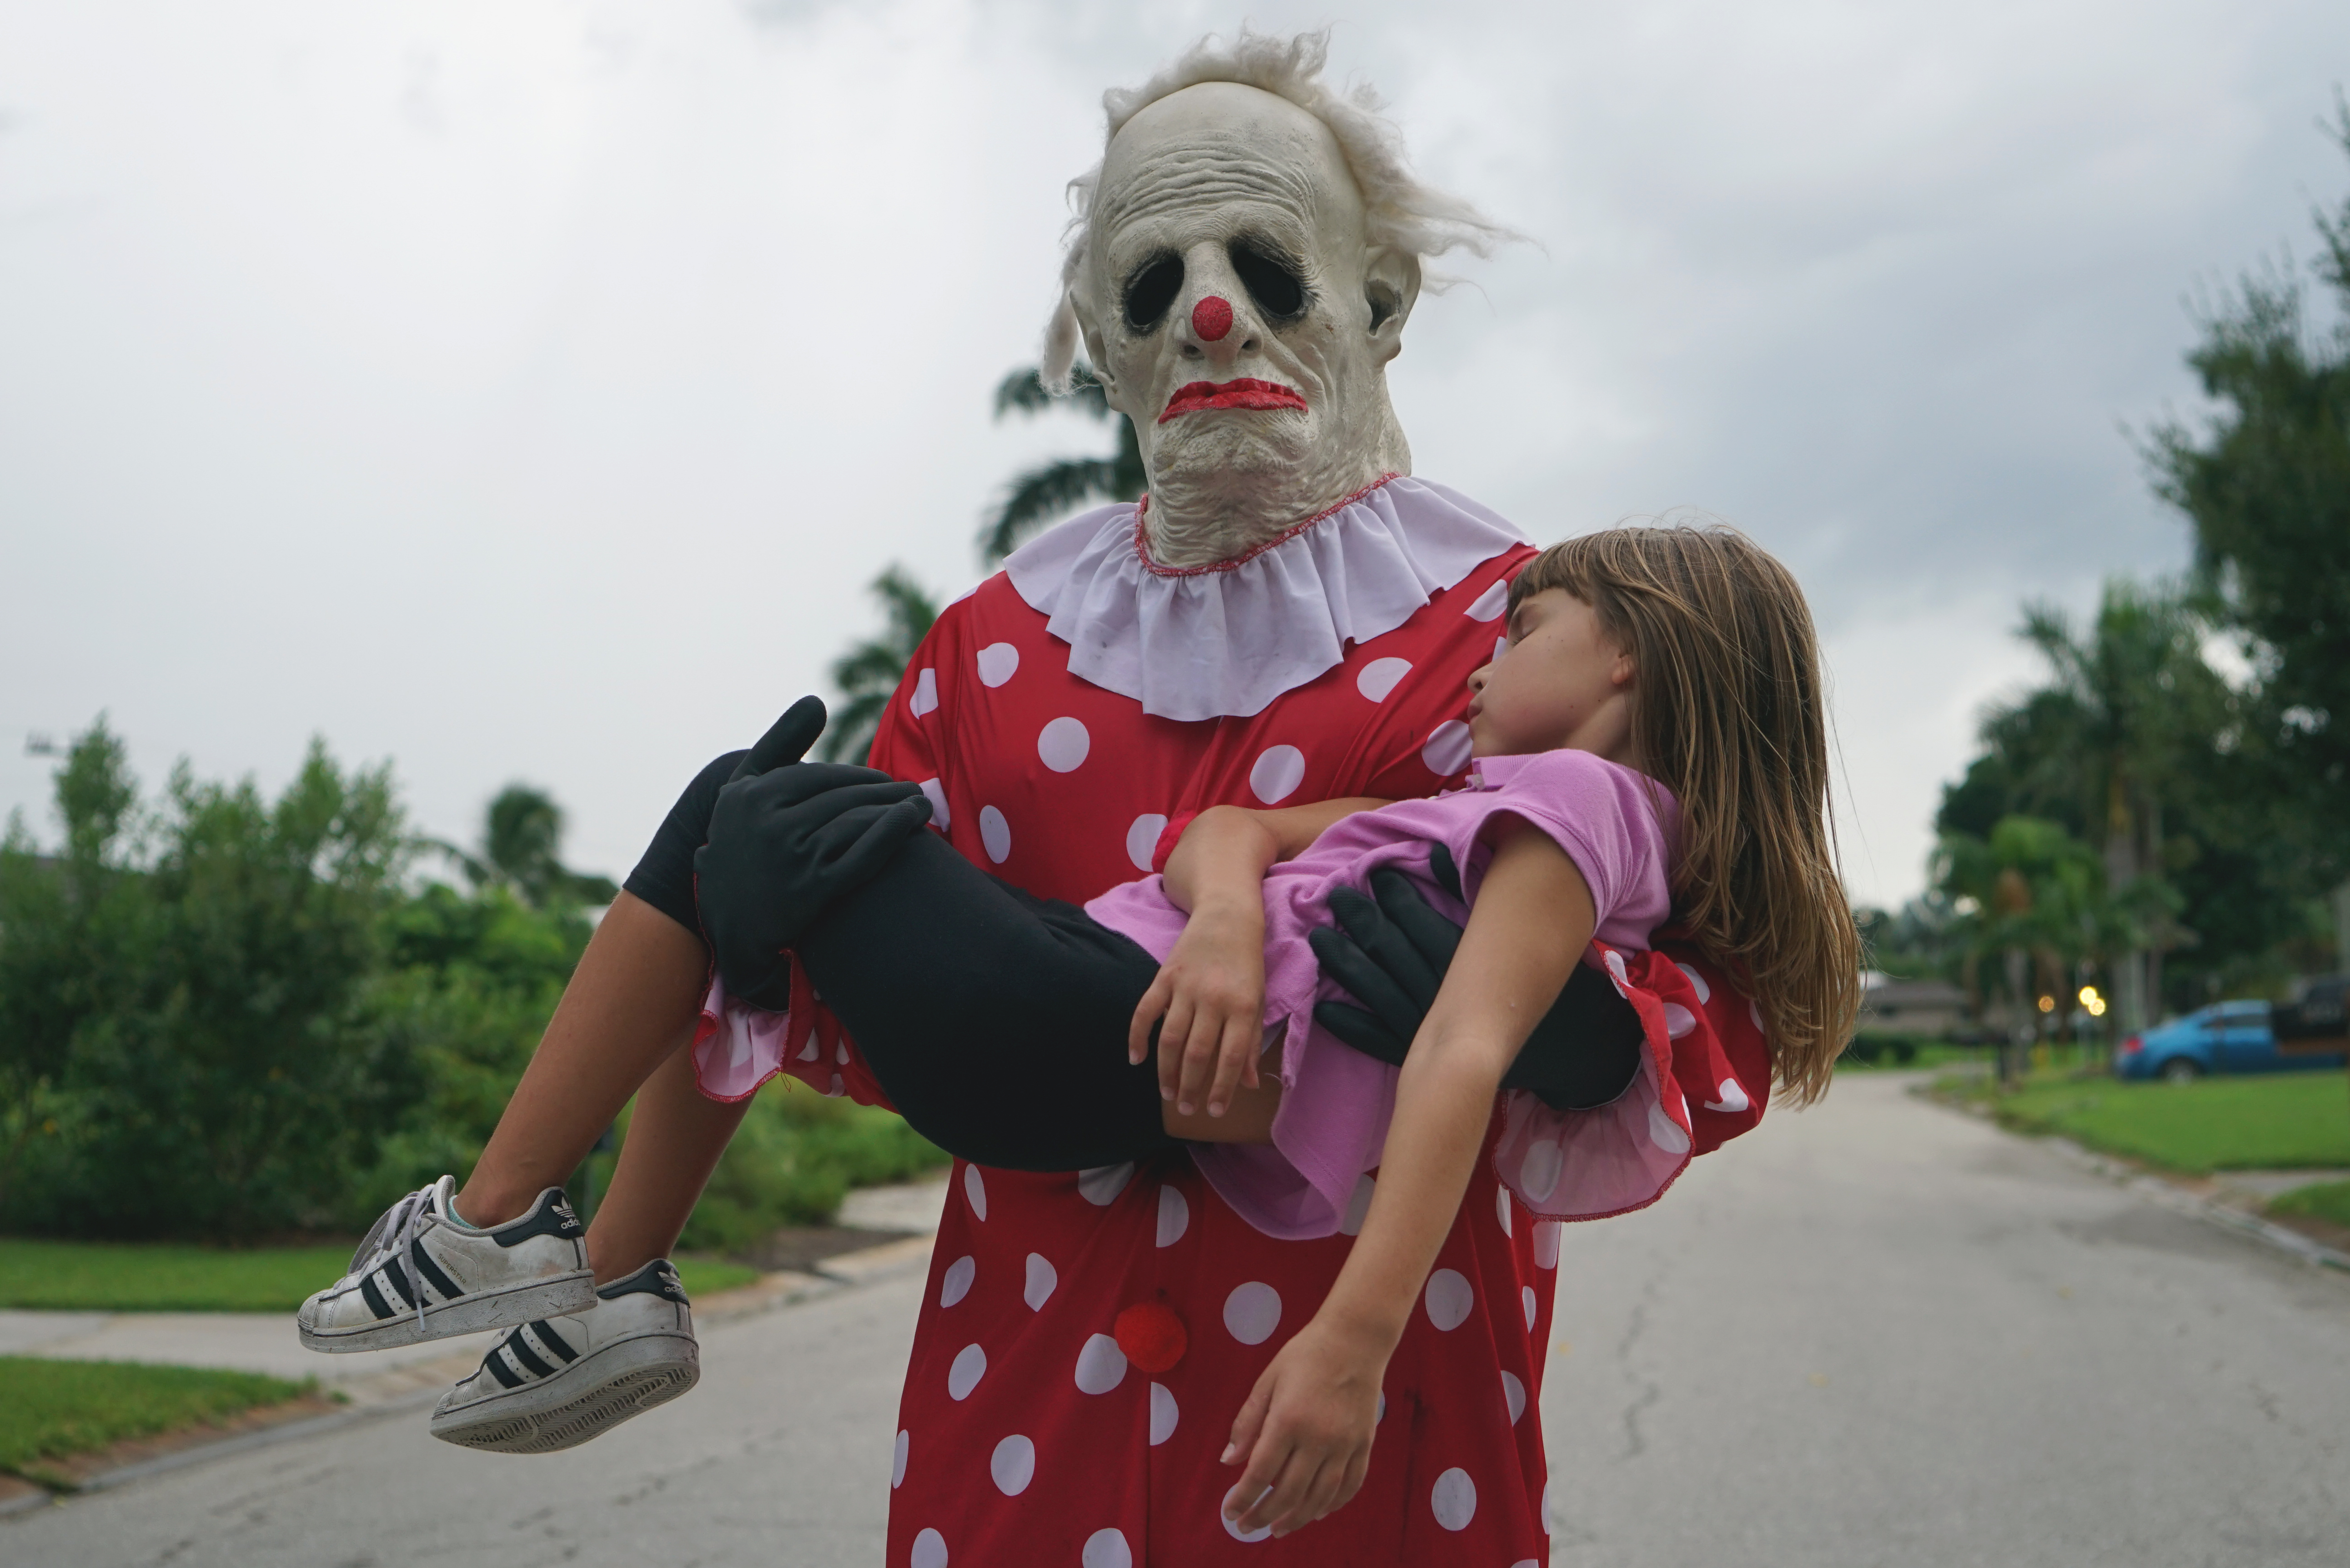 Fantastic Fest Review: WRINKLES THE CLOWN